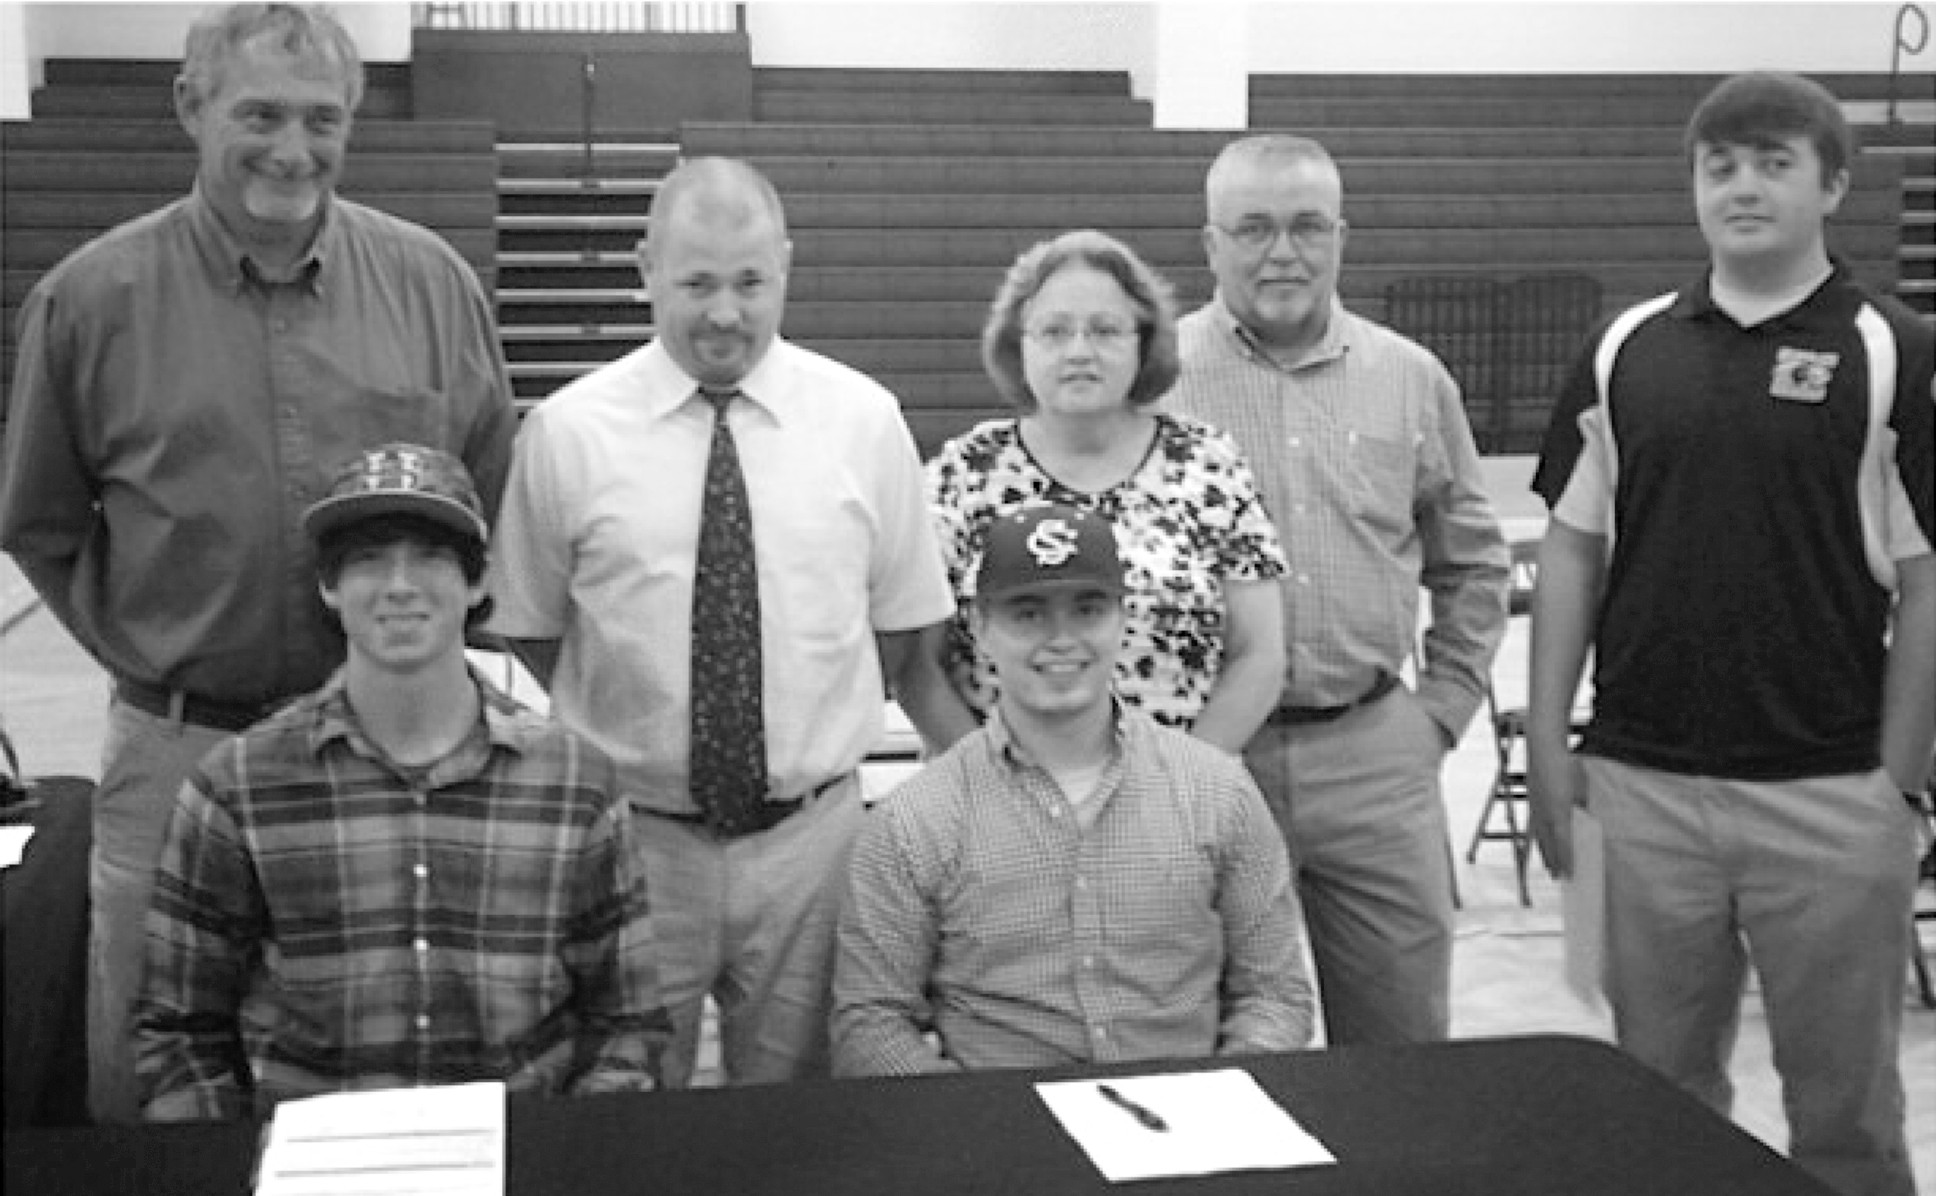 Cleveland's Chance Holliman and Jesse Aaron signed college baseball scholarships last month. Pictured are: (bottom row, left to right) Chance and Jesse; top row (l to r) Terry Holliman, Cleveland baseball coach Mike Johnson, Debbie Aaron, Barry Aaron, and Ben Aaron. Chance, who signed with with Southern Union Community College, was 7-2 with a 1.27 ERA. Jesse, who signed with Stillman College, hit .375 and was a two-year starter behind the plate.